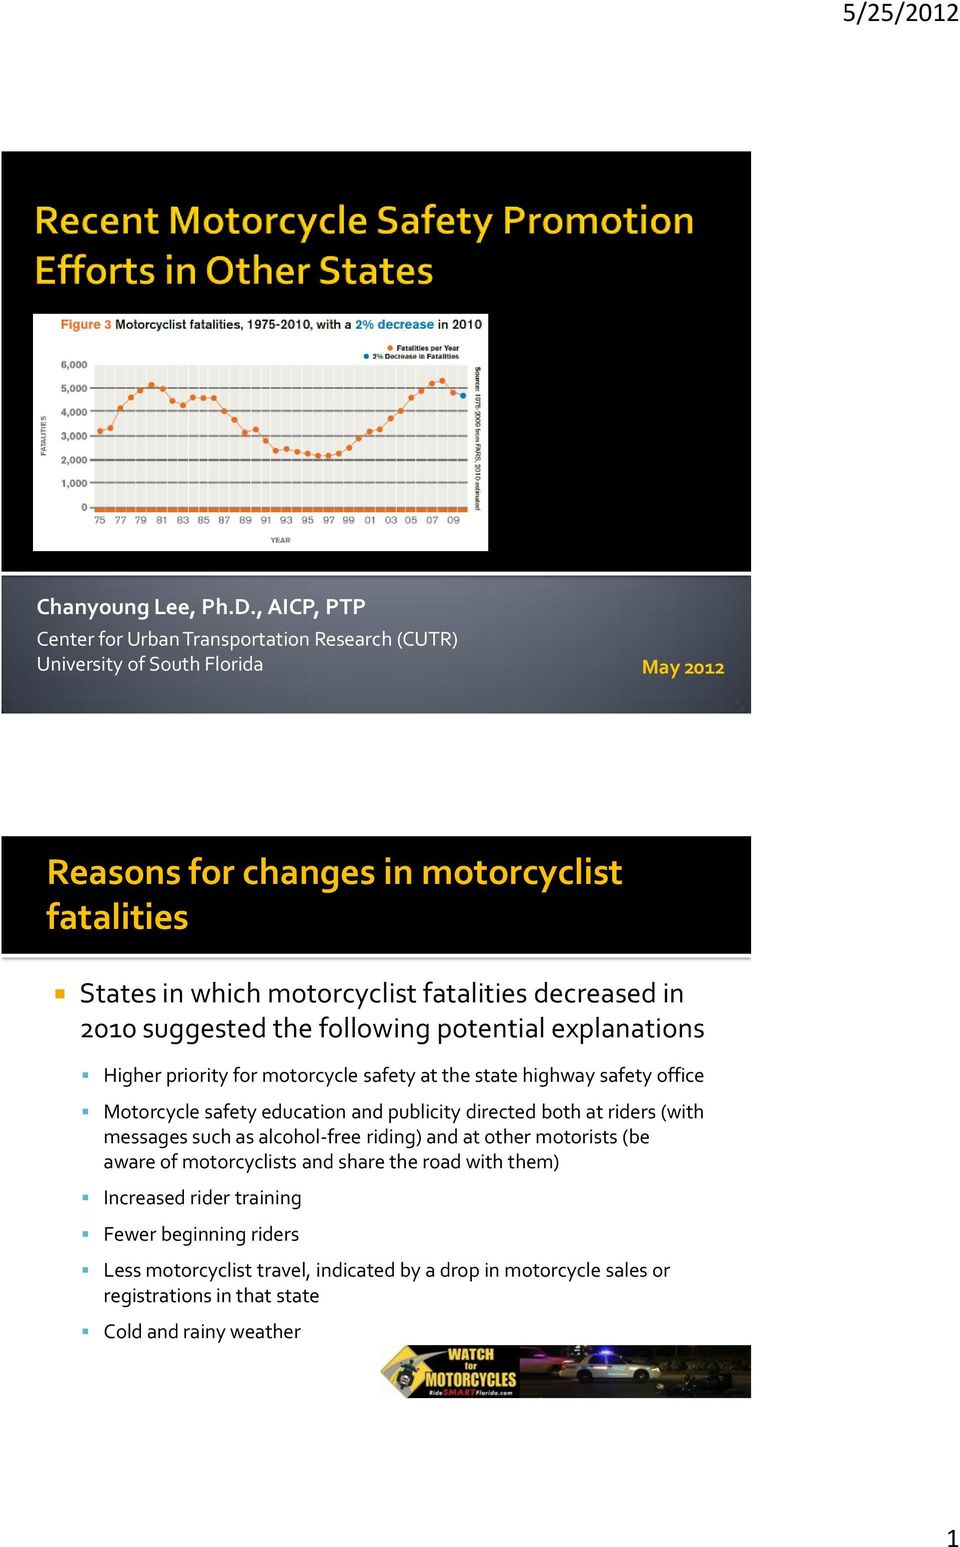 fatalities decreased in 2010 suggested the following potential explanations Higher priority for motorcycle safety at the state highway safety office Motorcycle safety